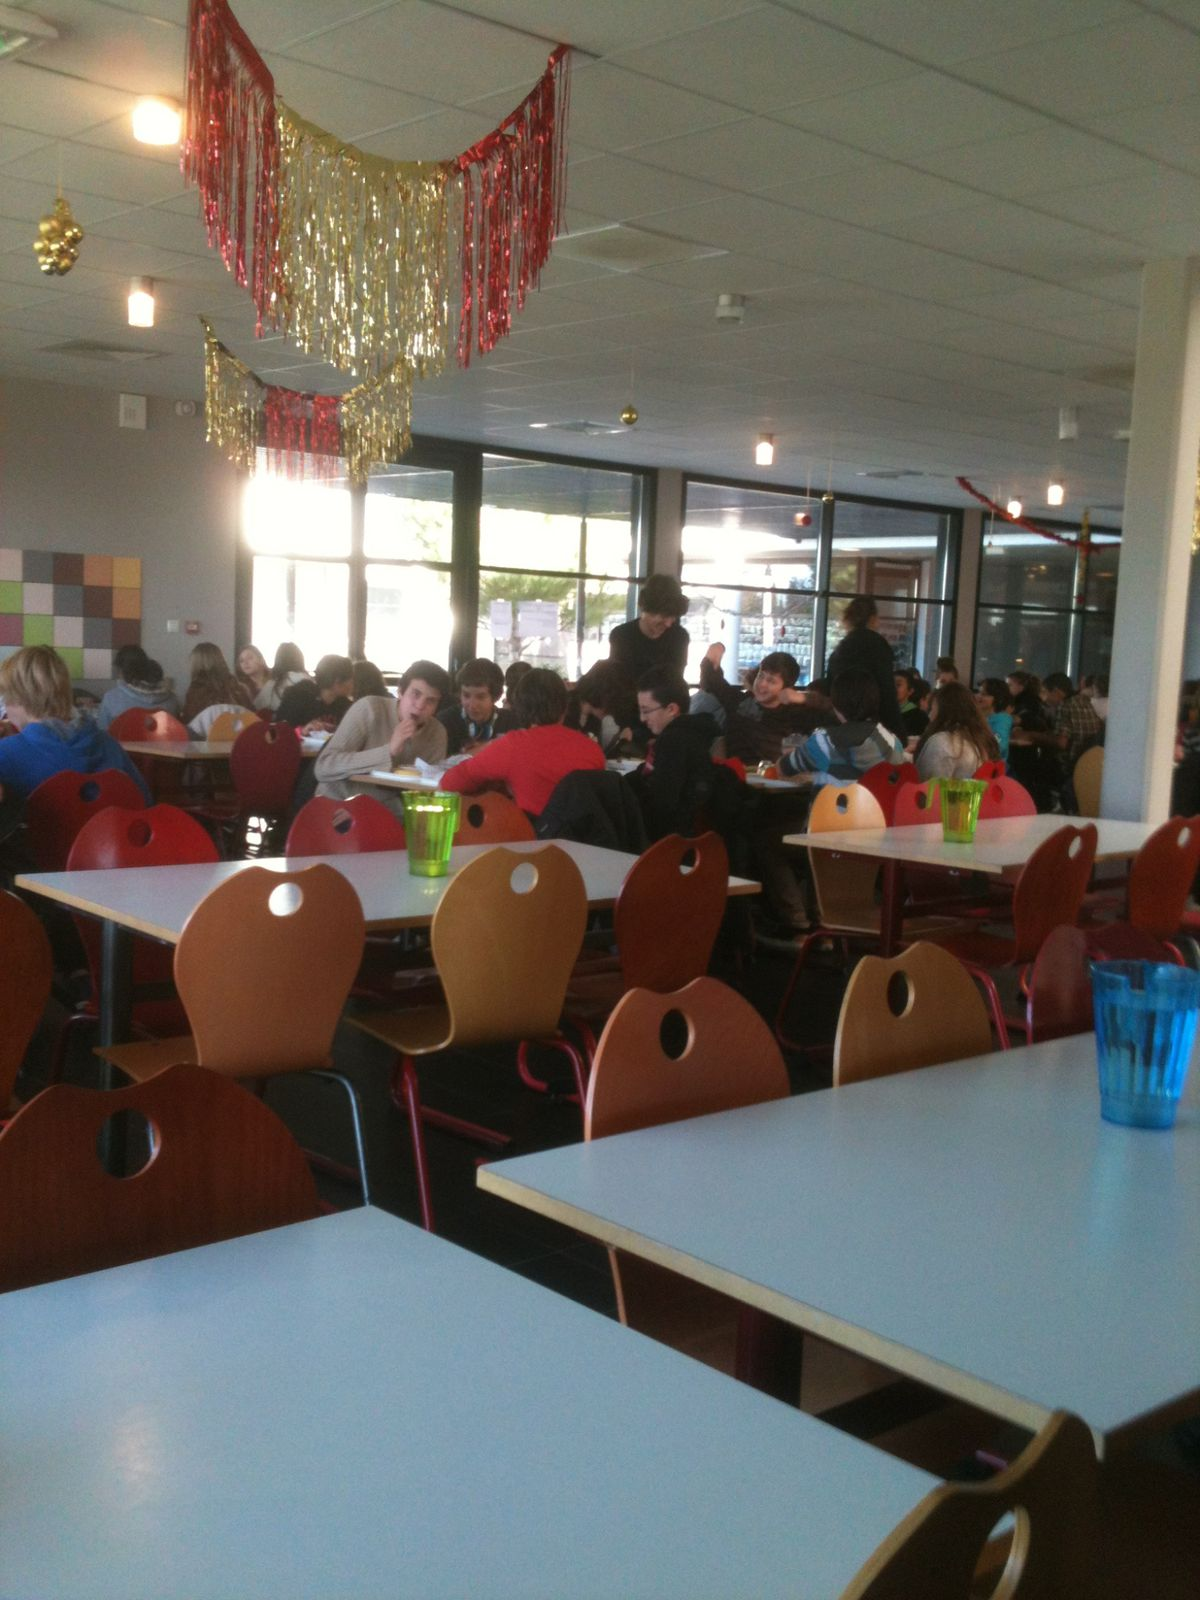 The dining hall where we eat lunch.